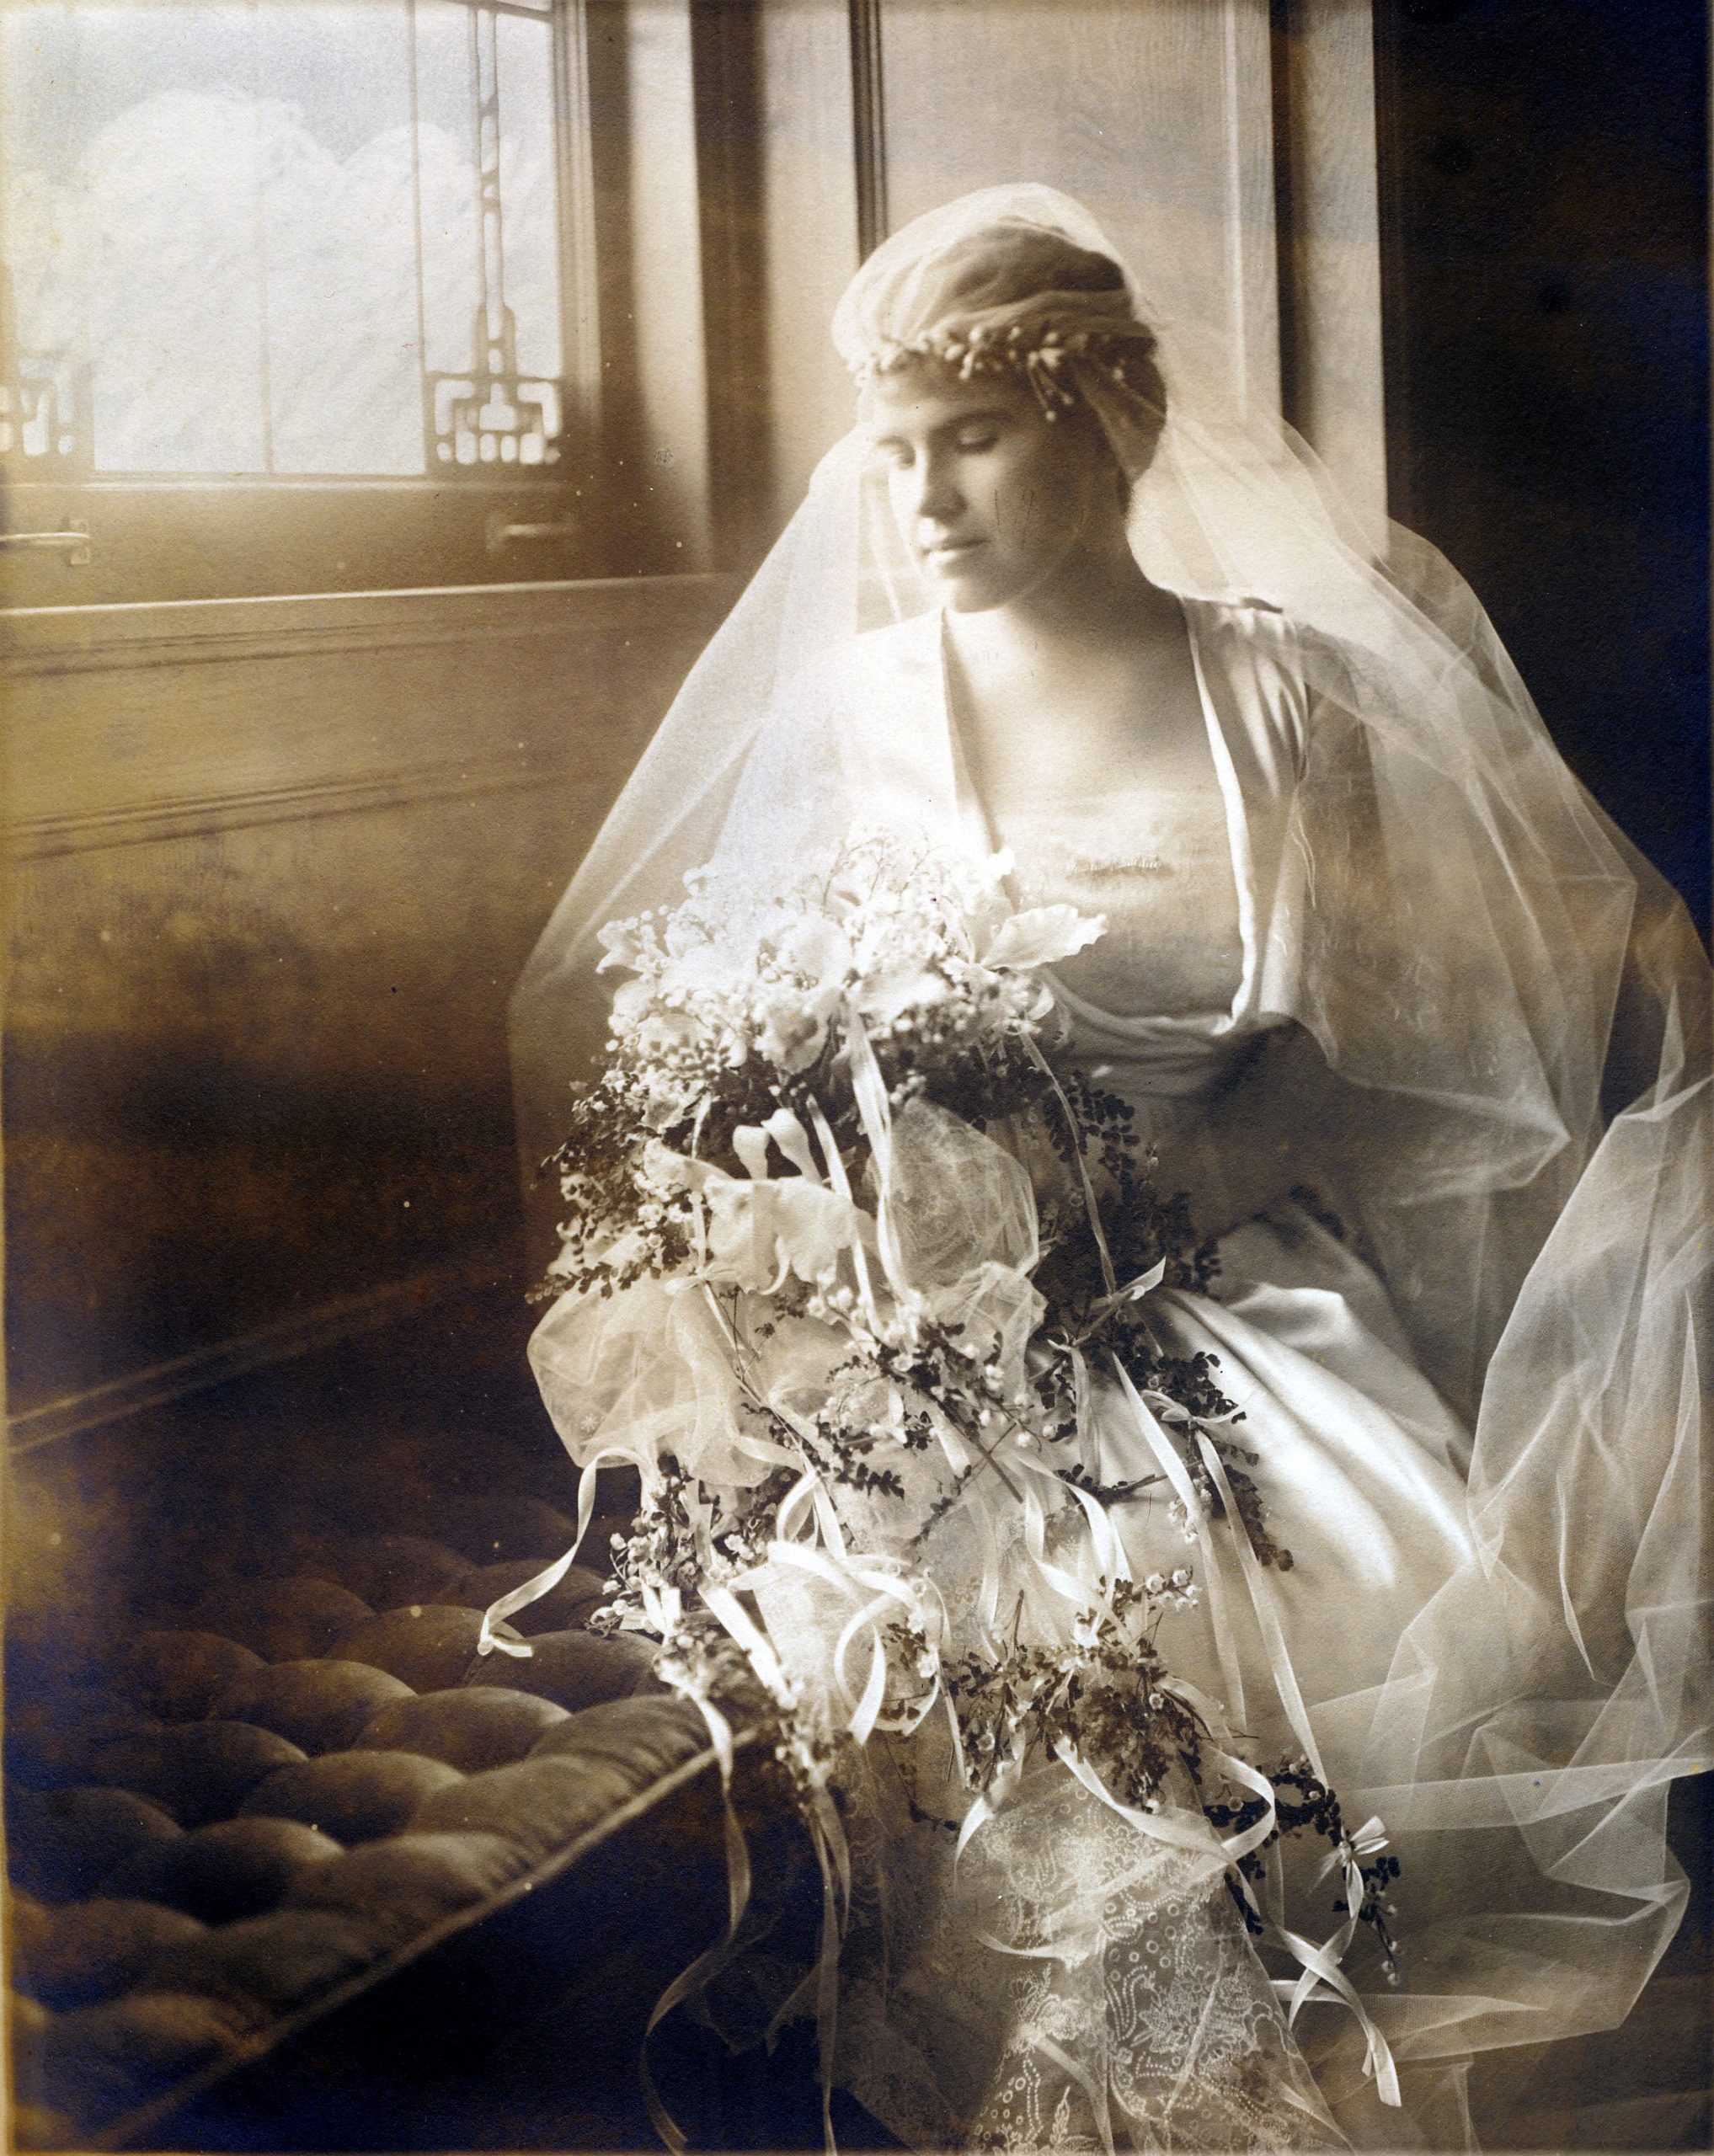 Marjorie looks at her bouquet on her wedding day.